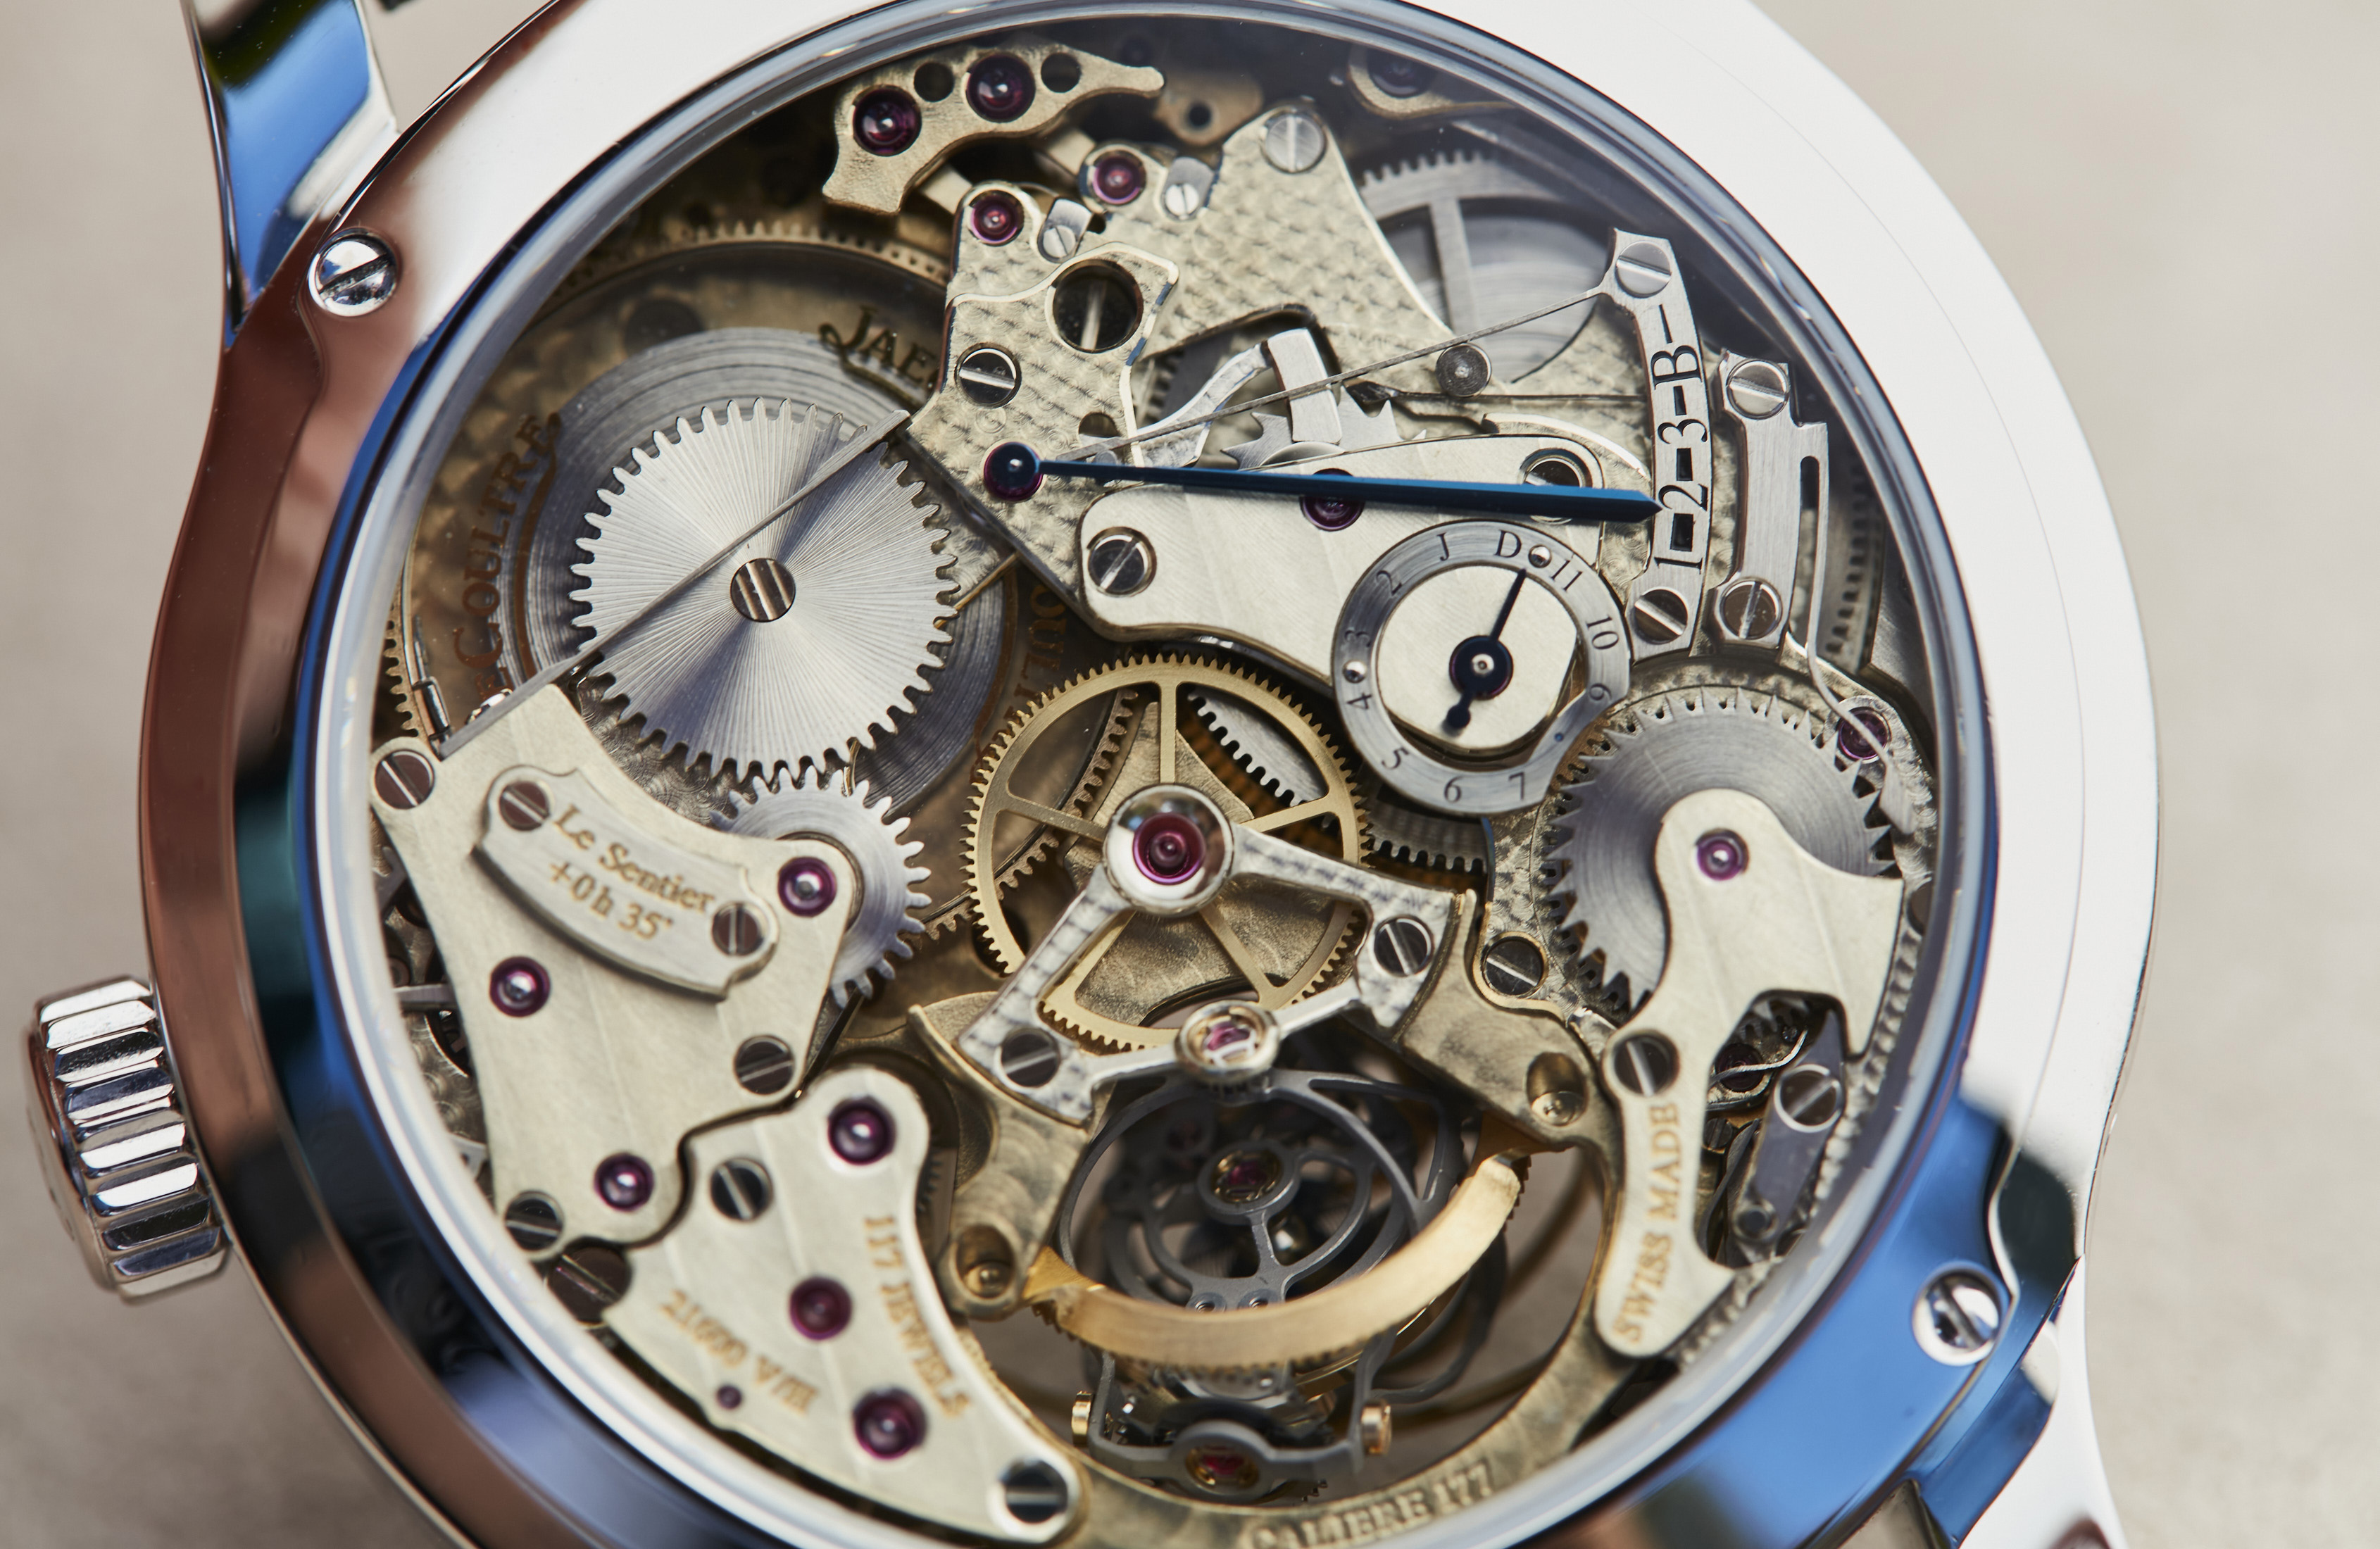 high-complication watches from Jaeger-LeCoultre